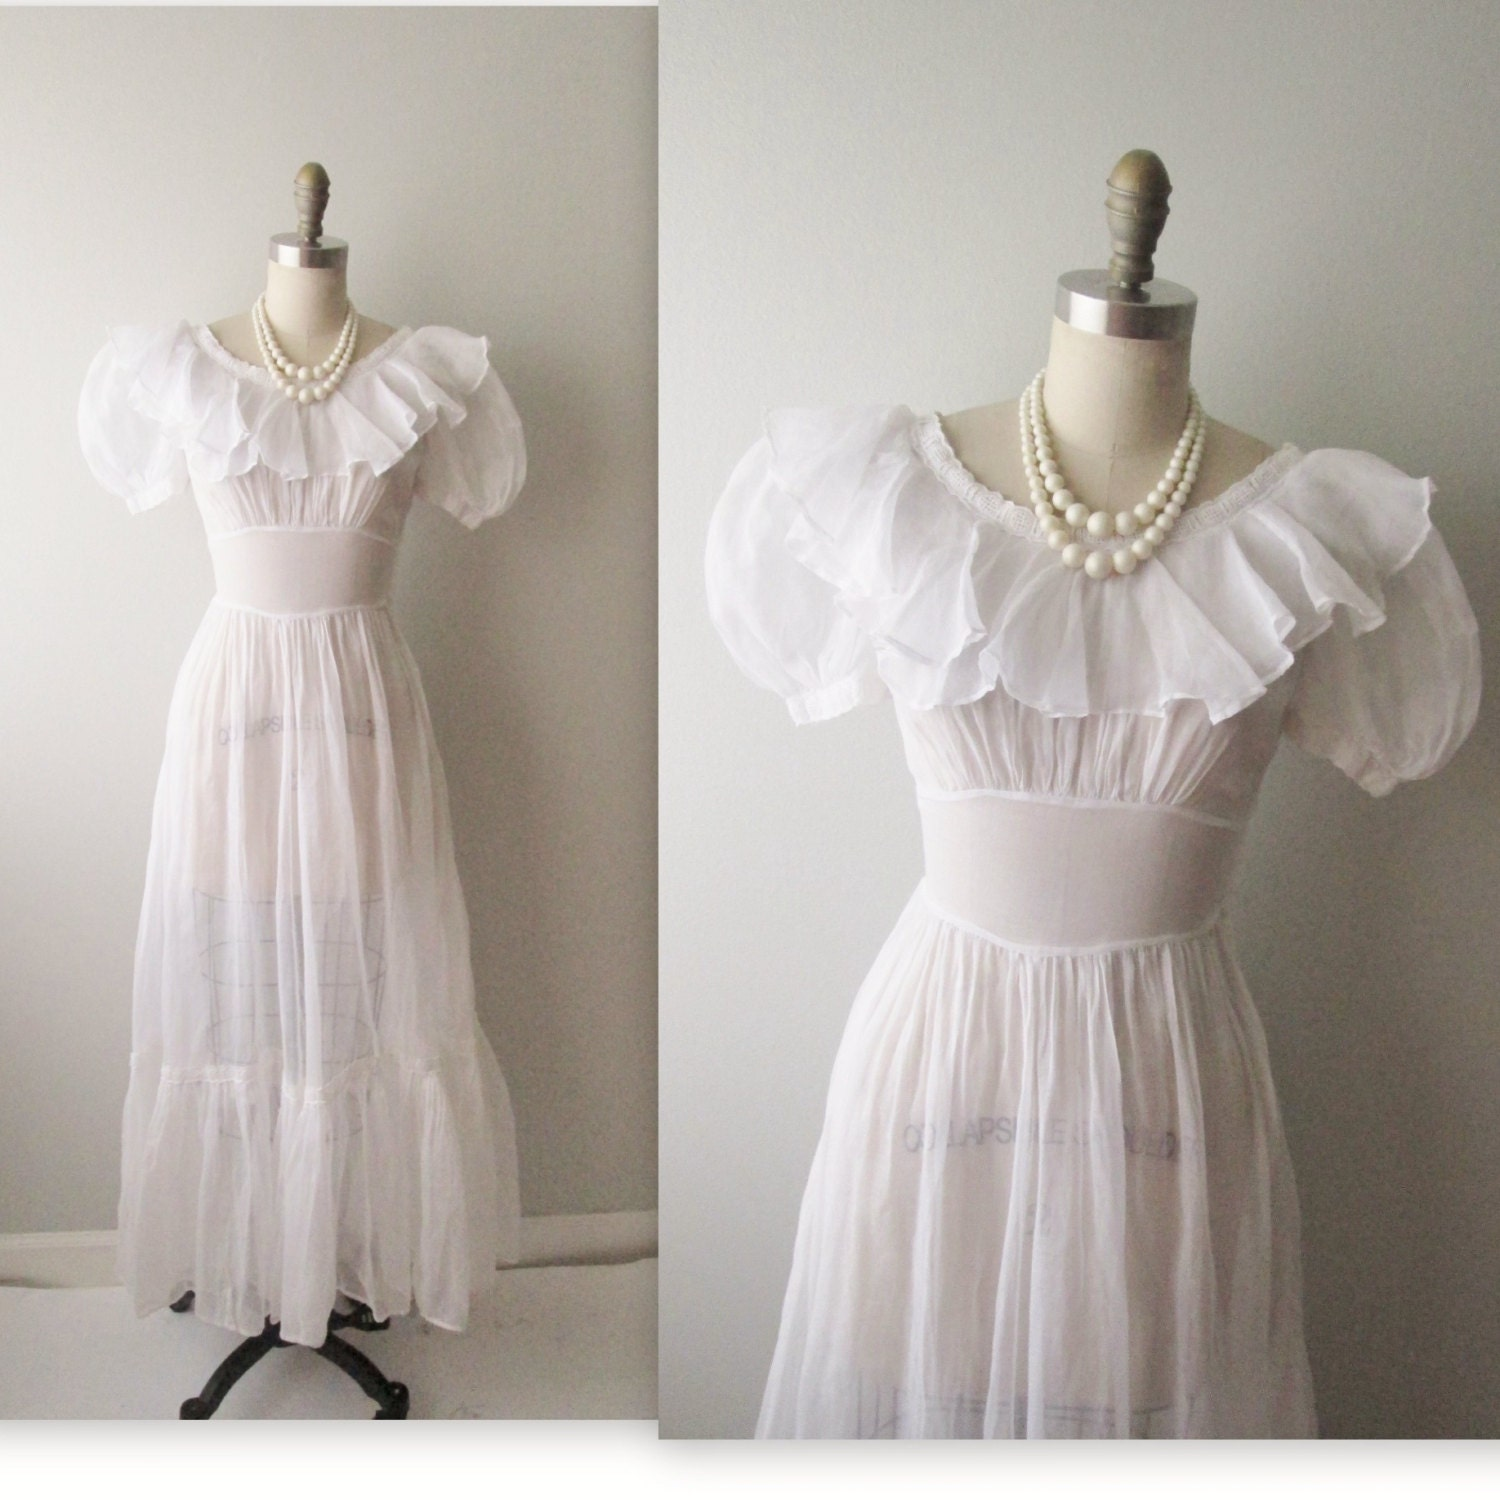 40s Wedding Dress // Vintage 1940s White Organdy Full Length